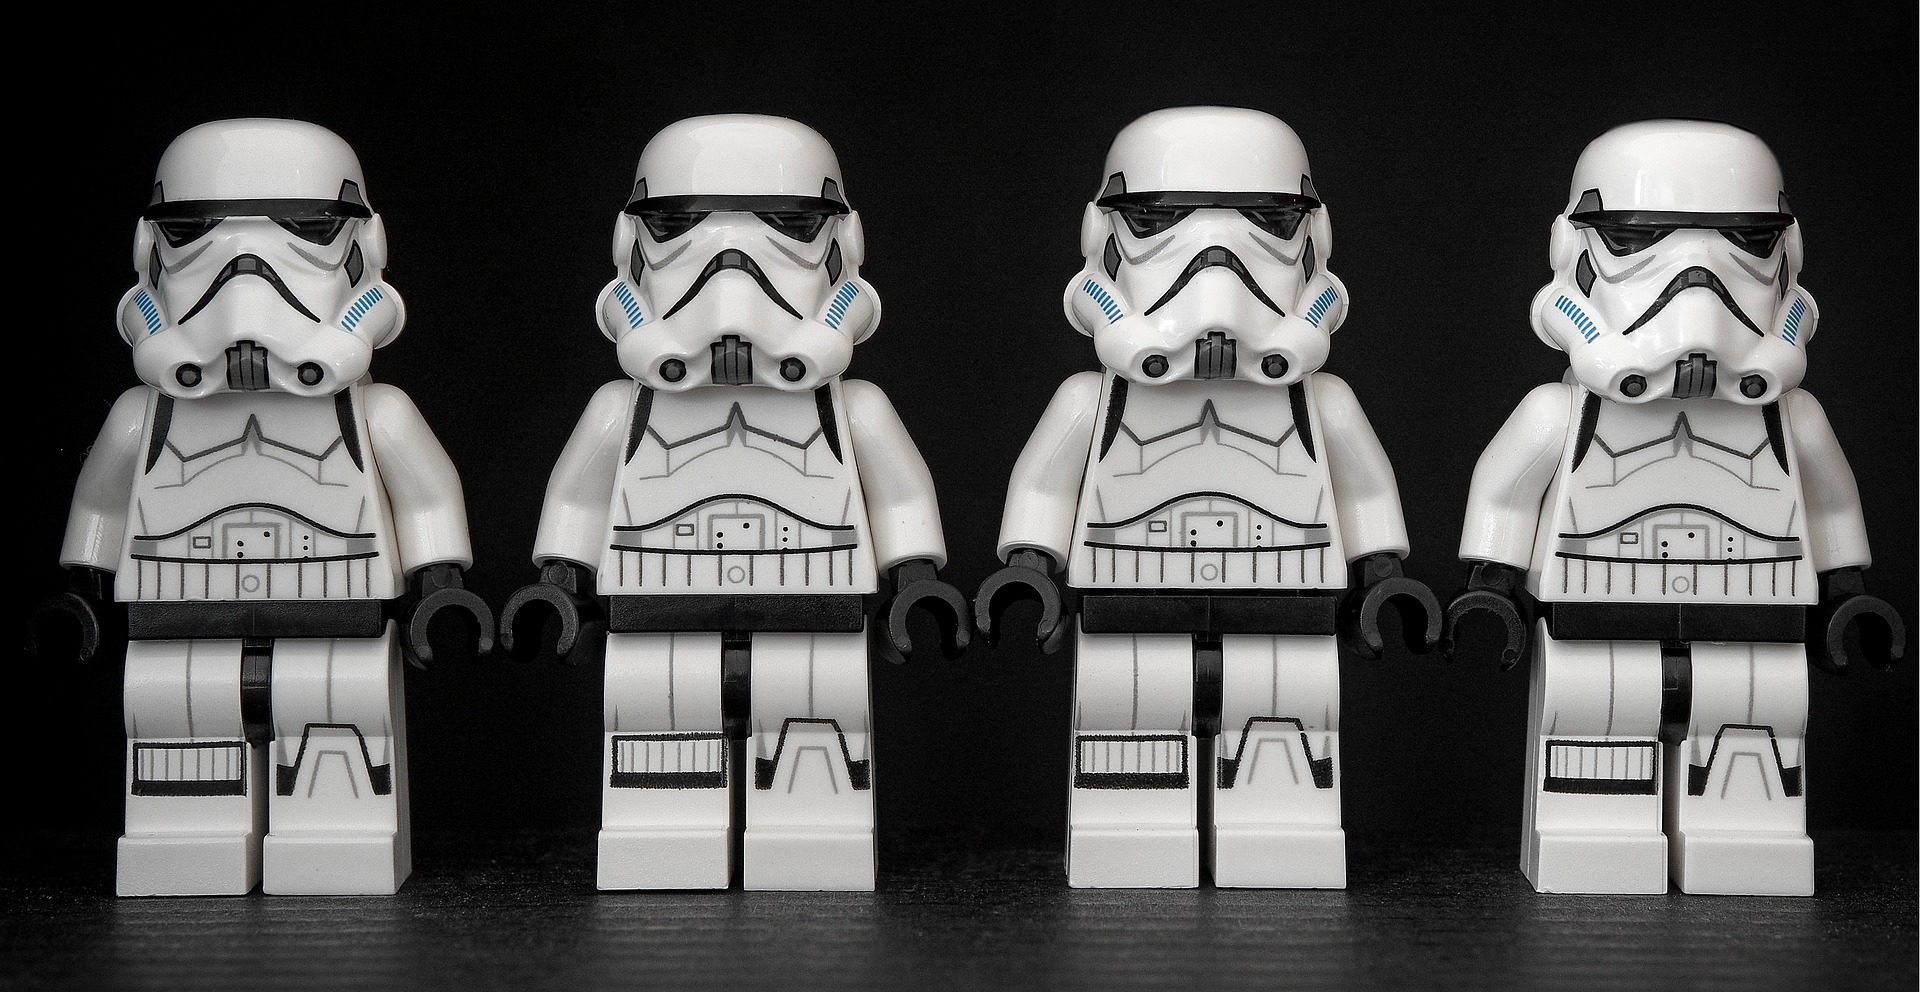 The Last Jedi – Where is our Stormtrooper?